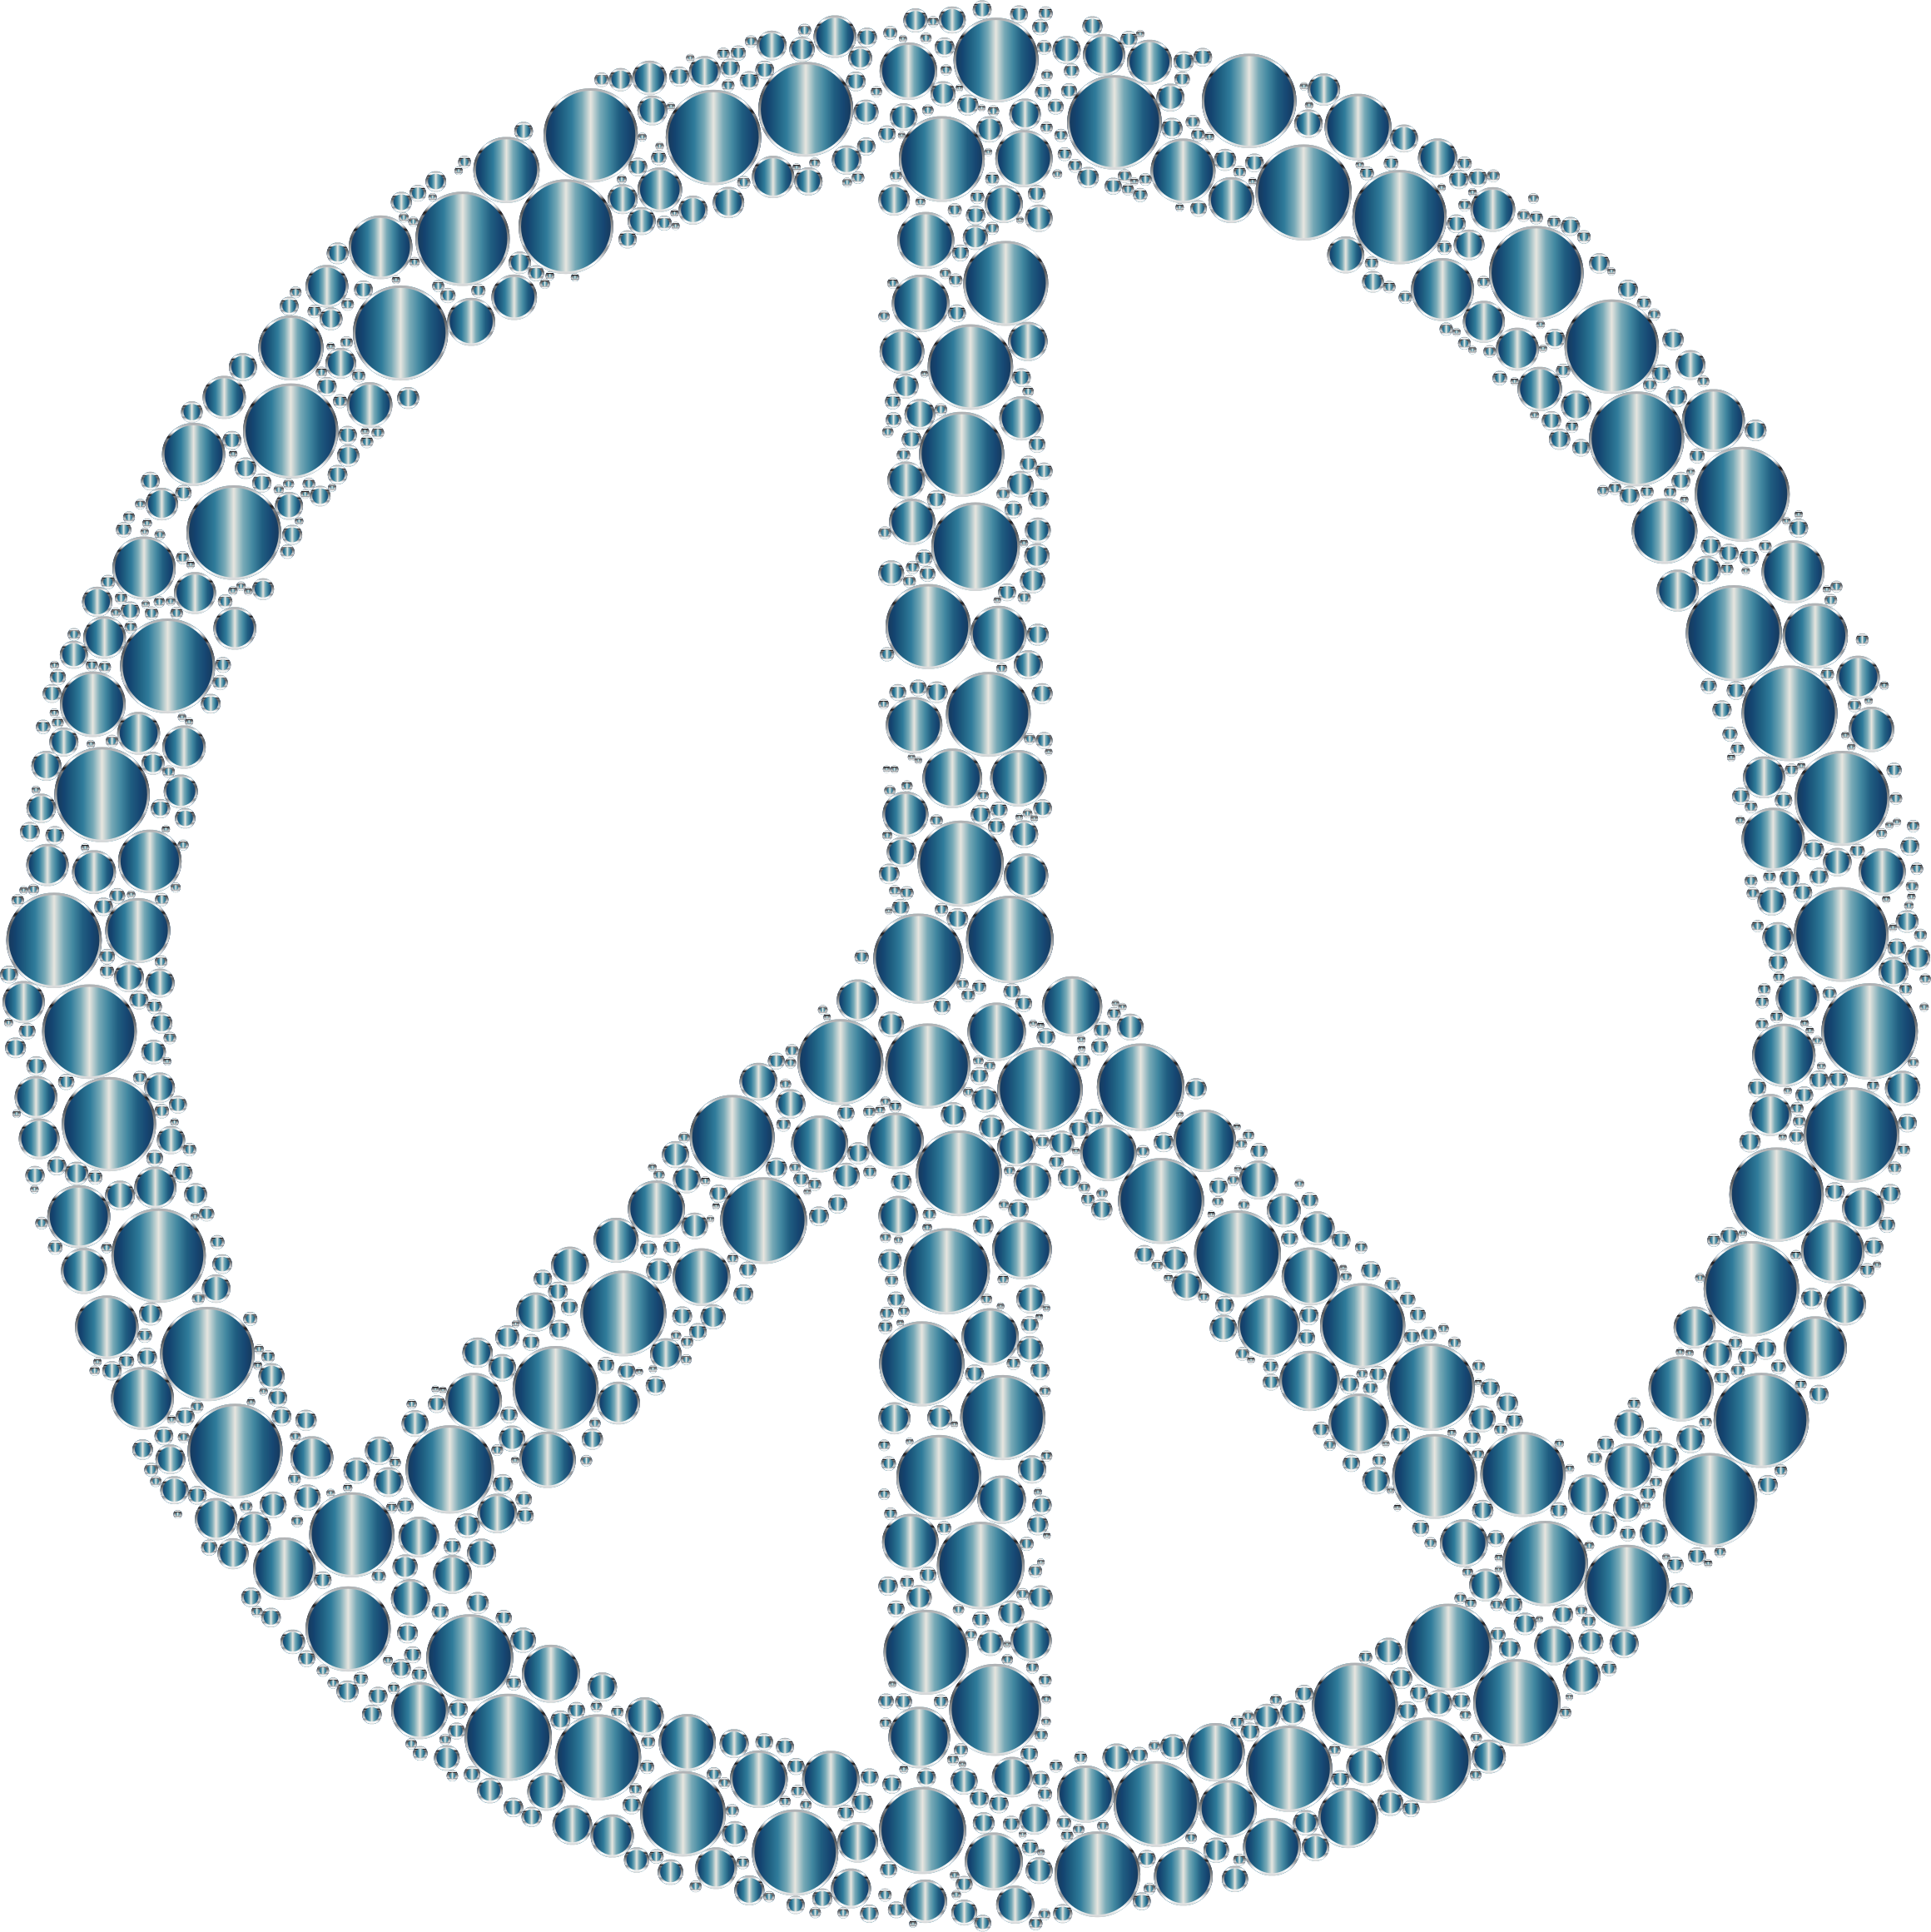 Colorful Circles Peace Sign 20 Without Background by GDJ